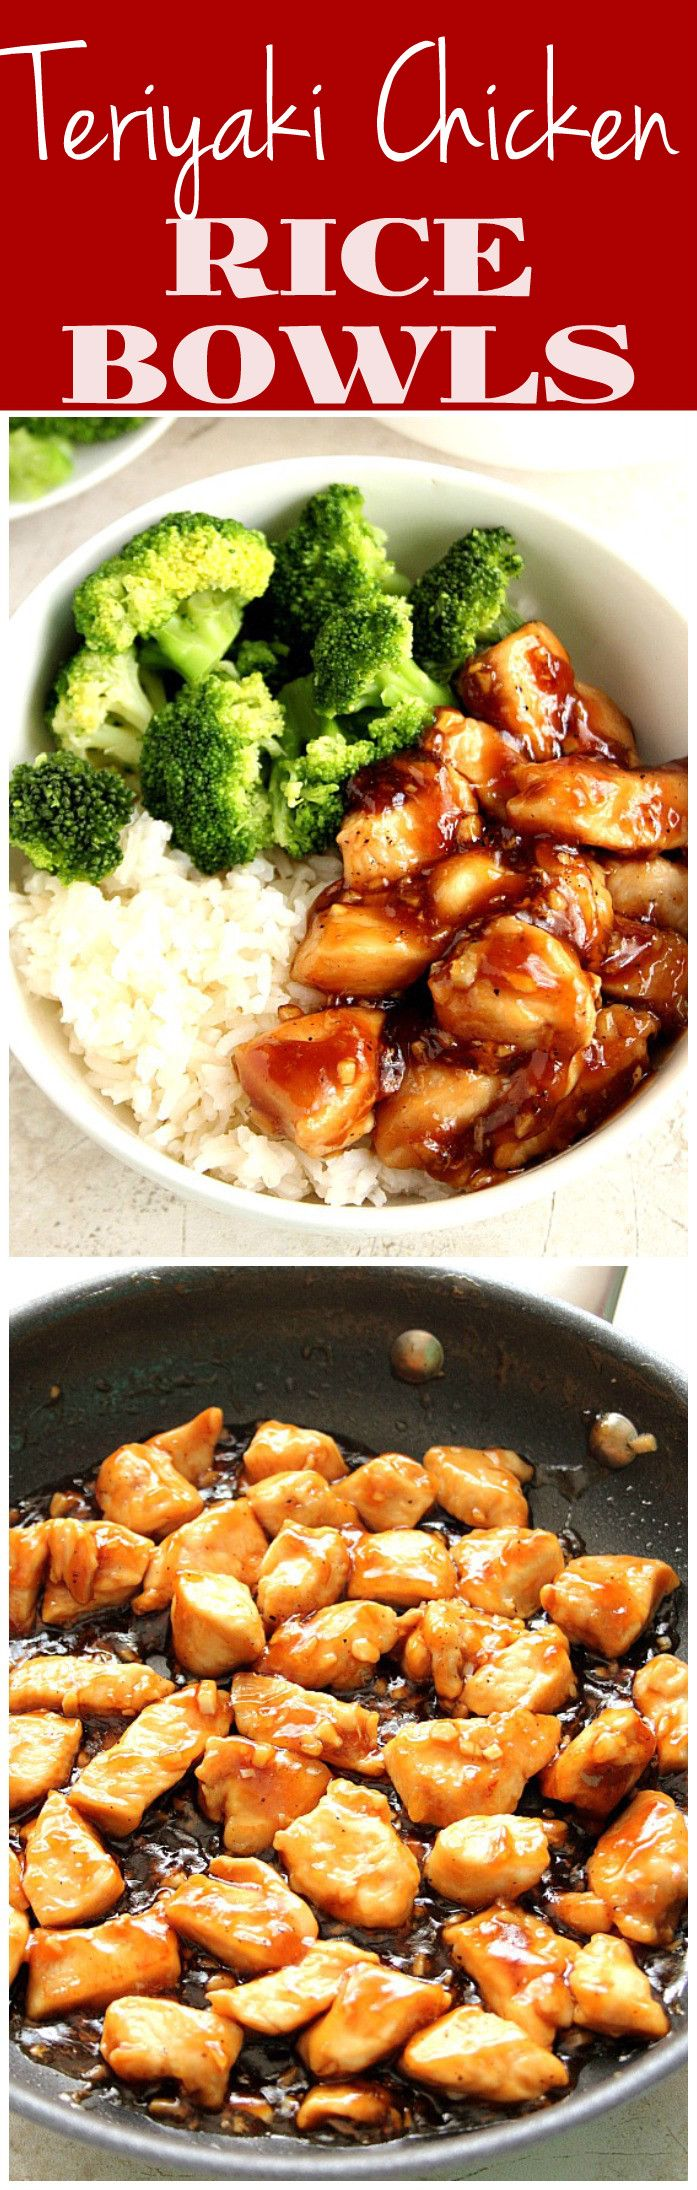 Quick Teriyaki Chicken Rice Bowls  Recipe  Meat Ive -9609